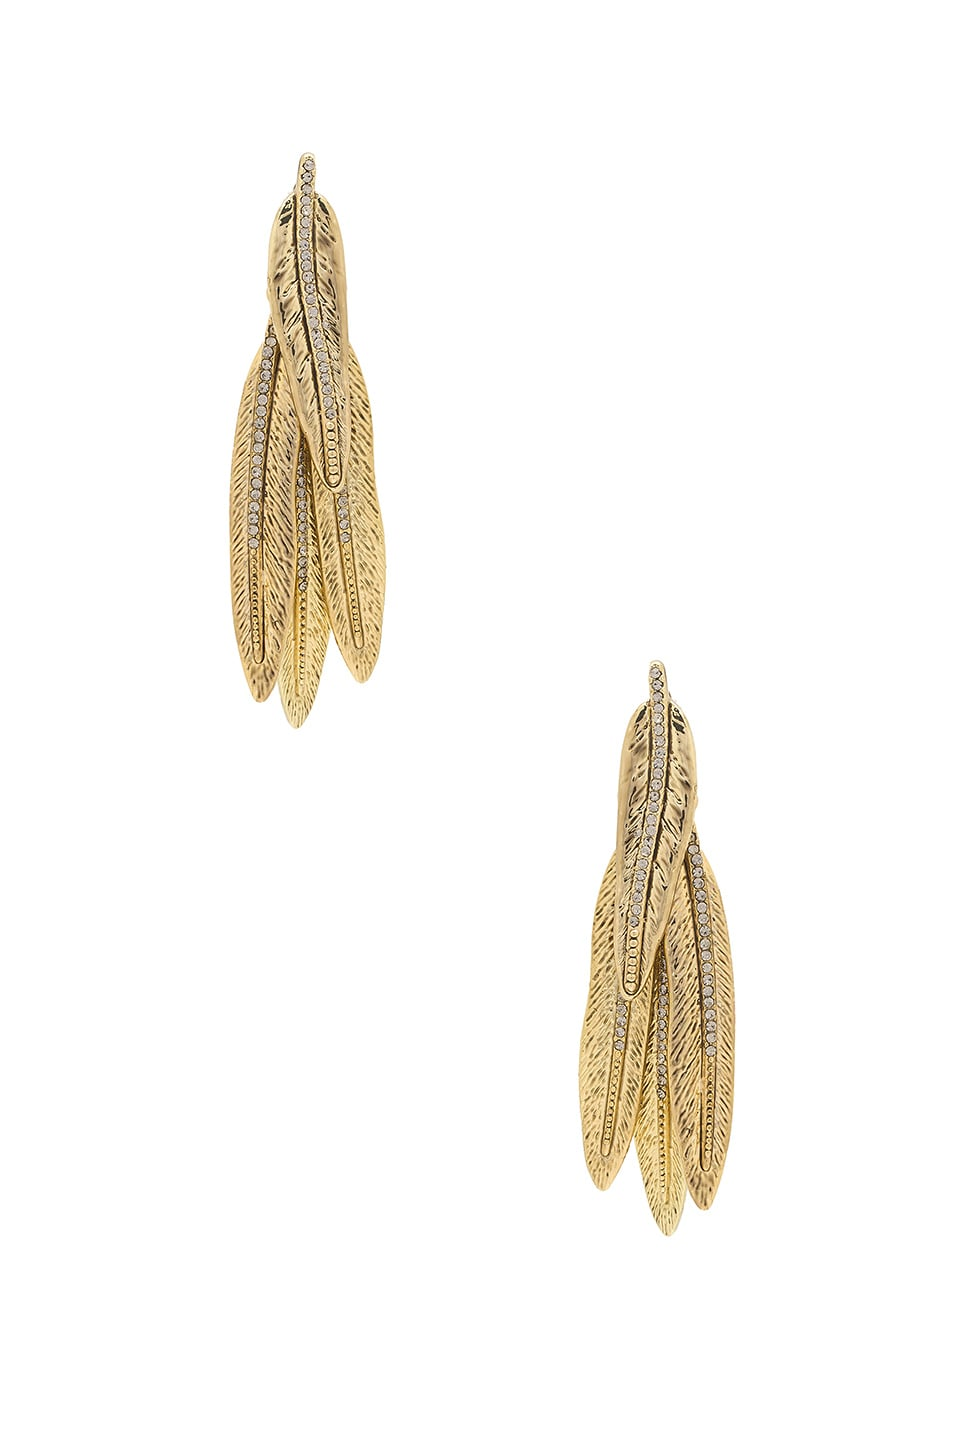 House of Harlow 1960 Cedro Dangle Earrings in Gold